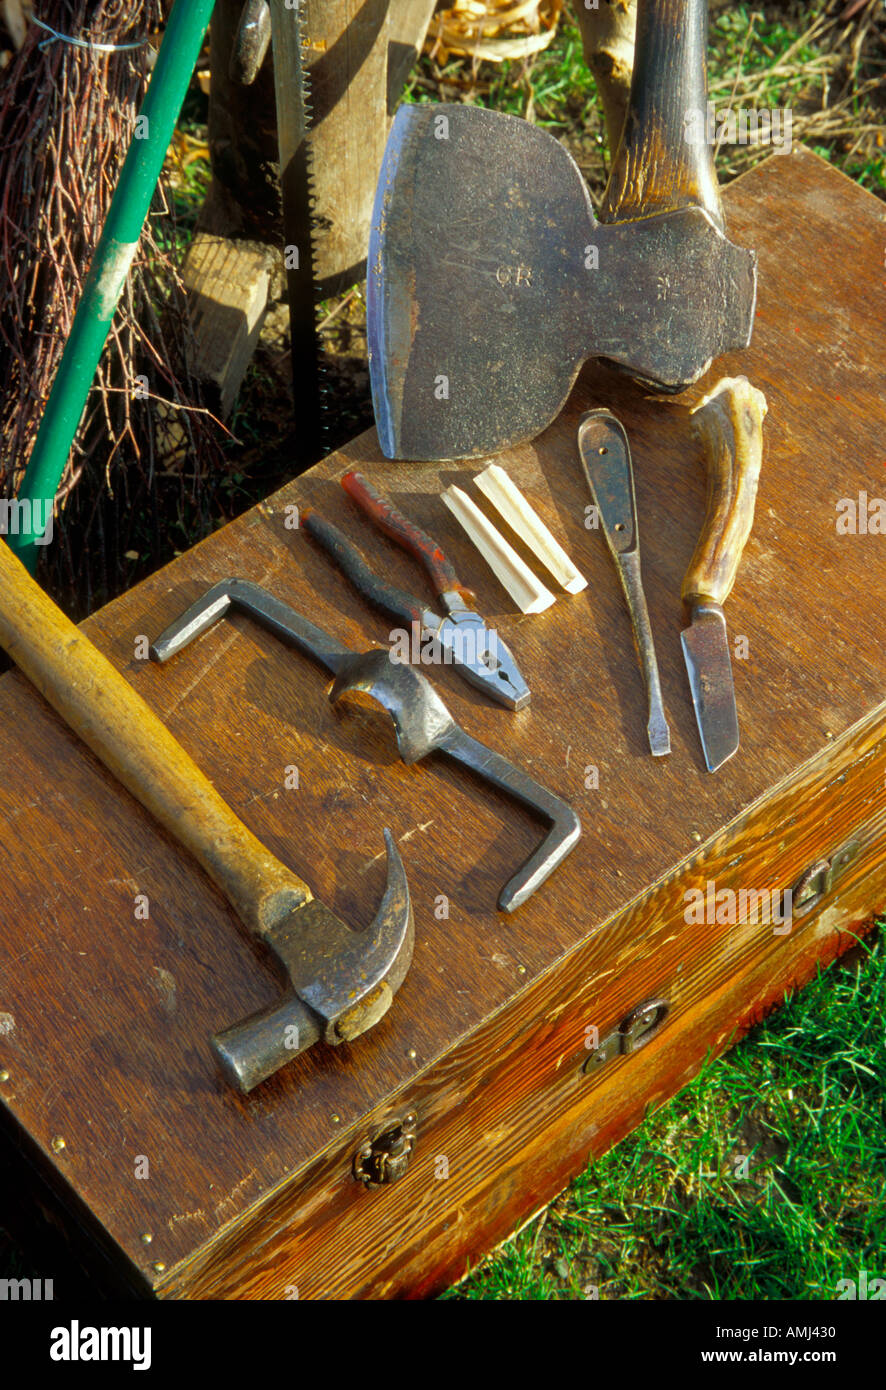 Besom Brooms Stock Photos & Besom Brooms Stock Images - Alamy